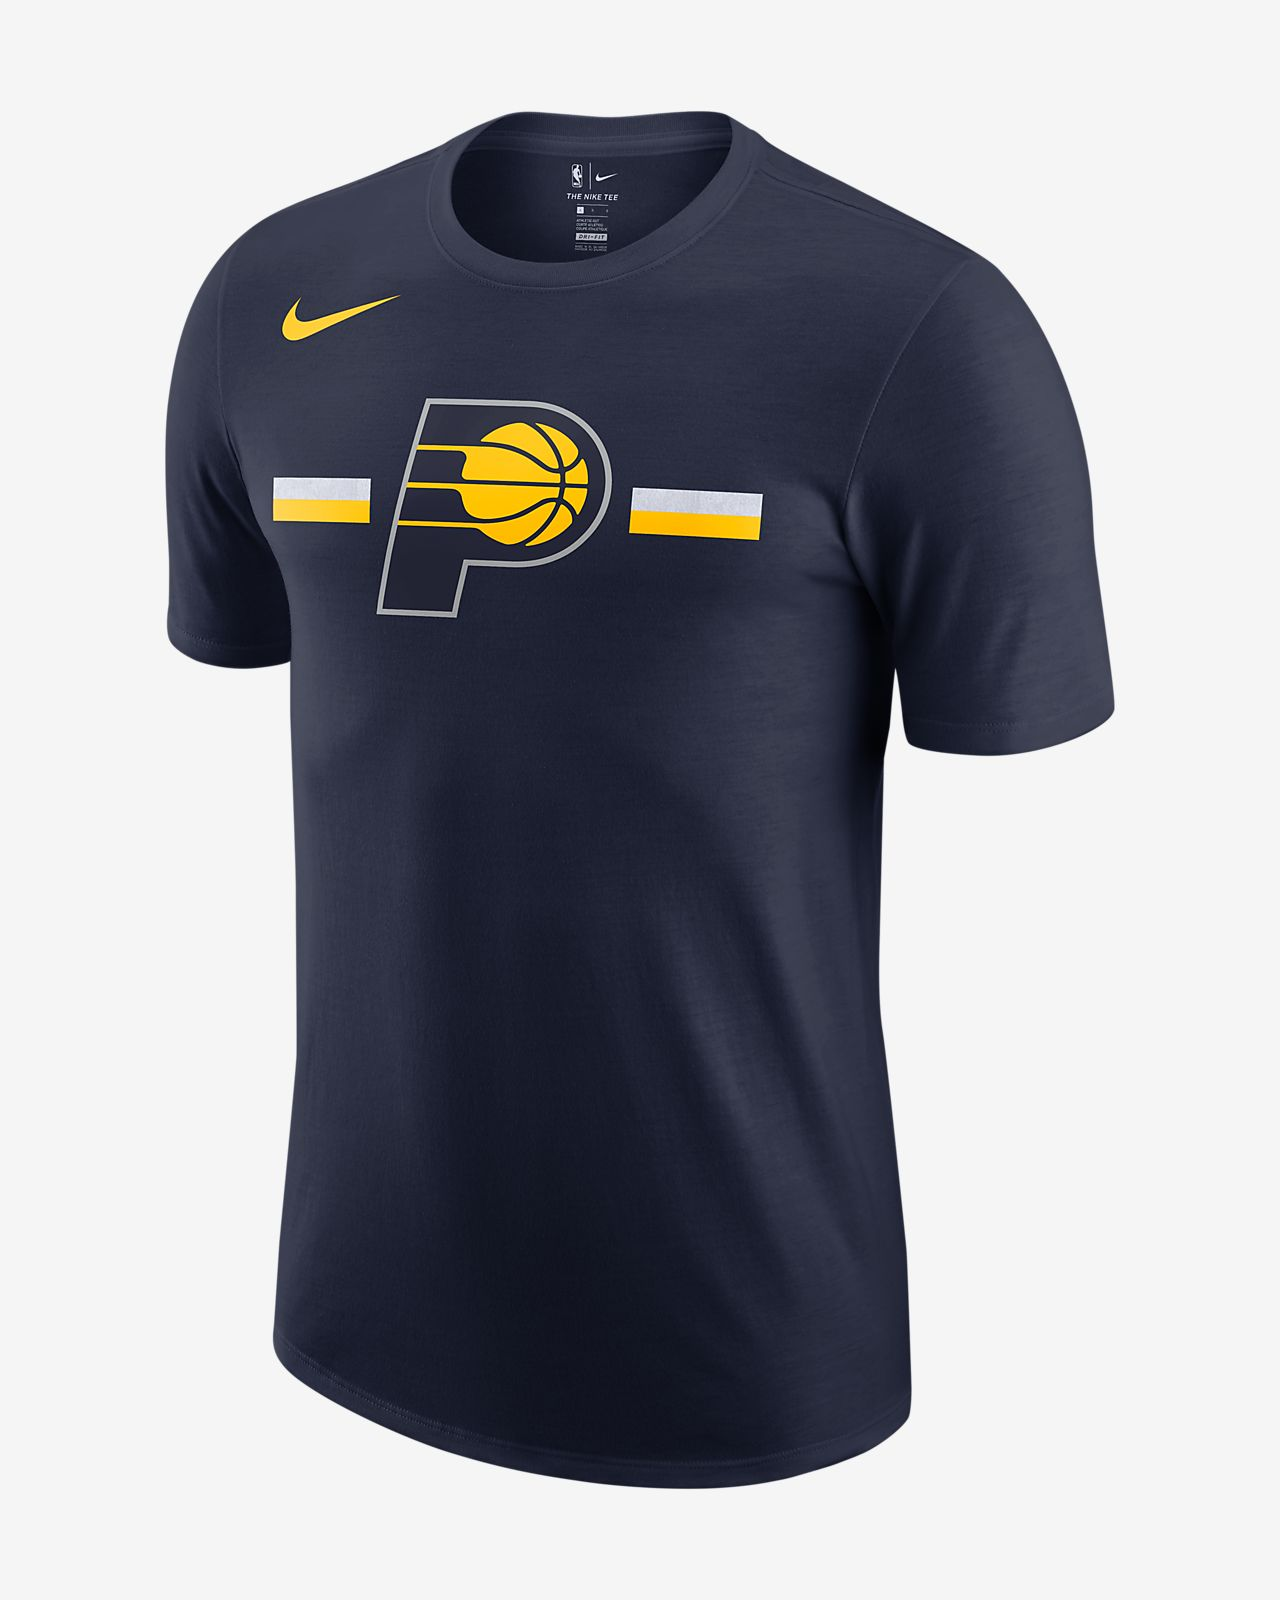 292178ab595 Indiana Pacers Nike Dri-FIT Men's NBA T-Shirt. Nike.com